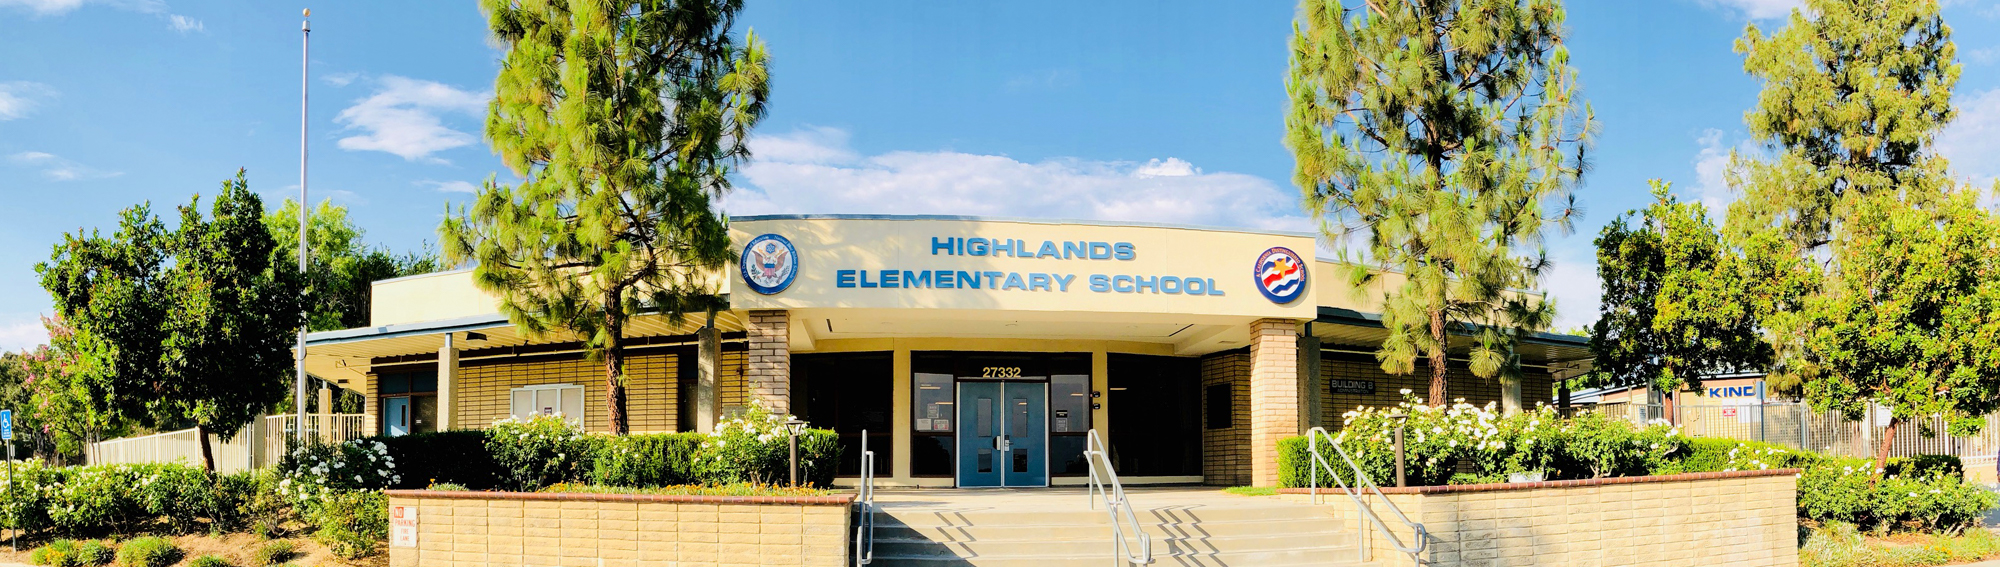 front view of Highlands Elementary School